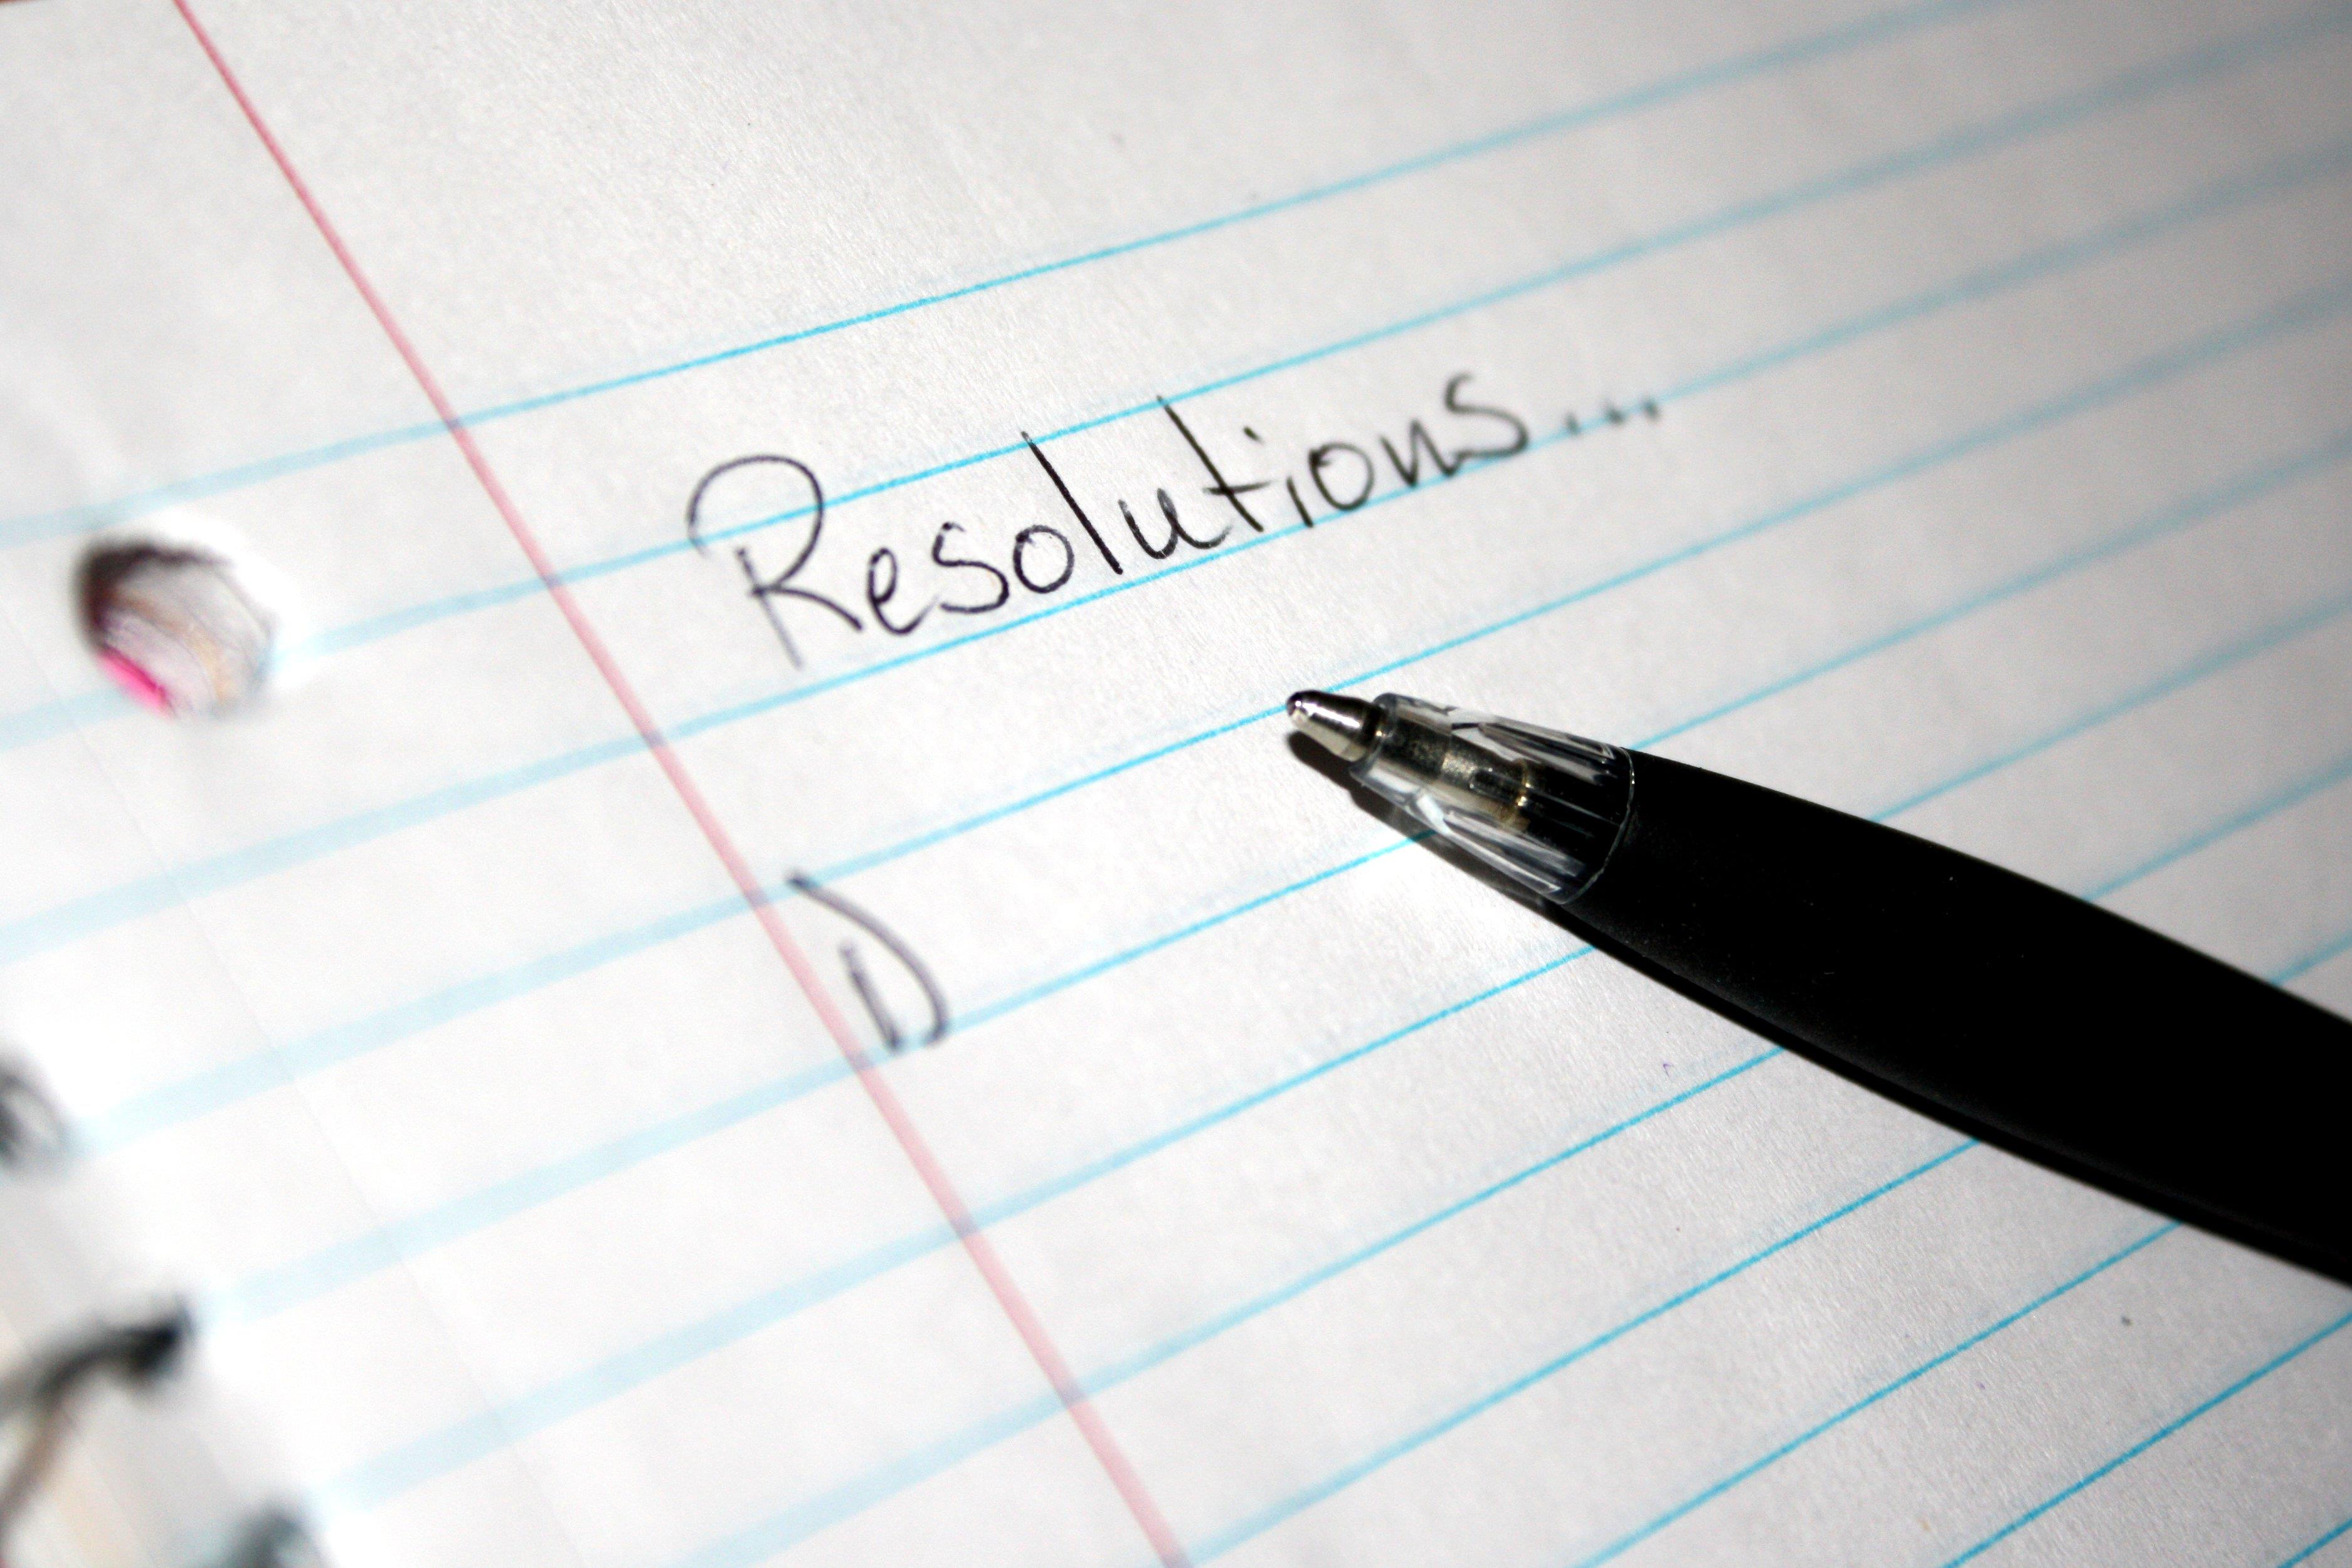 Top 5 resolutions for landlords